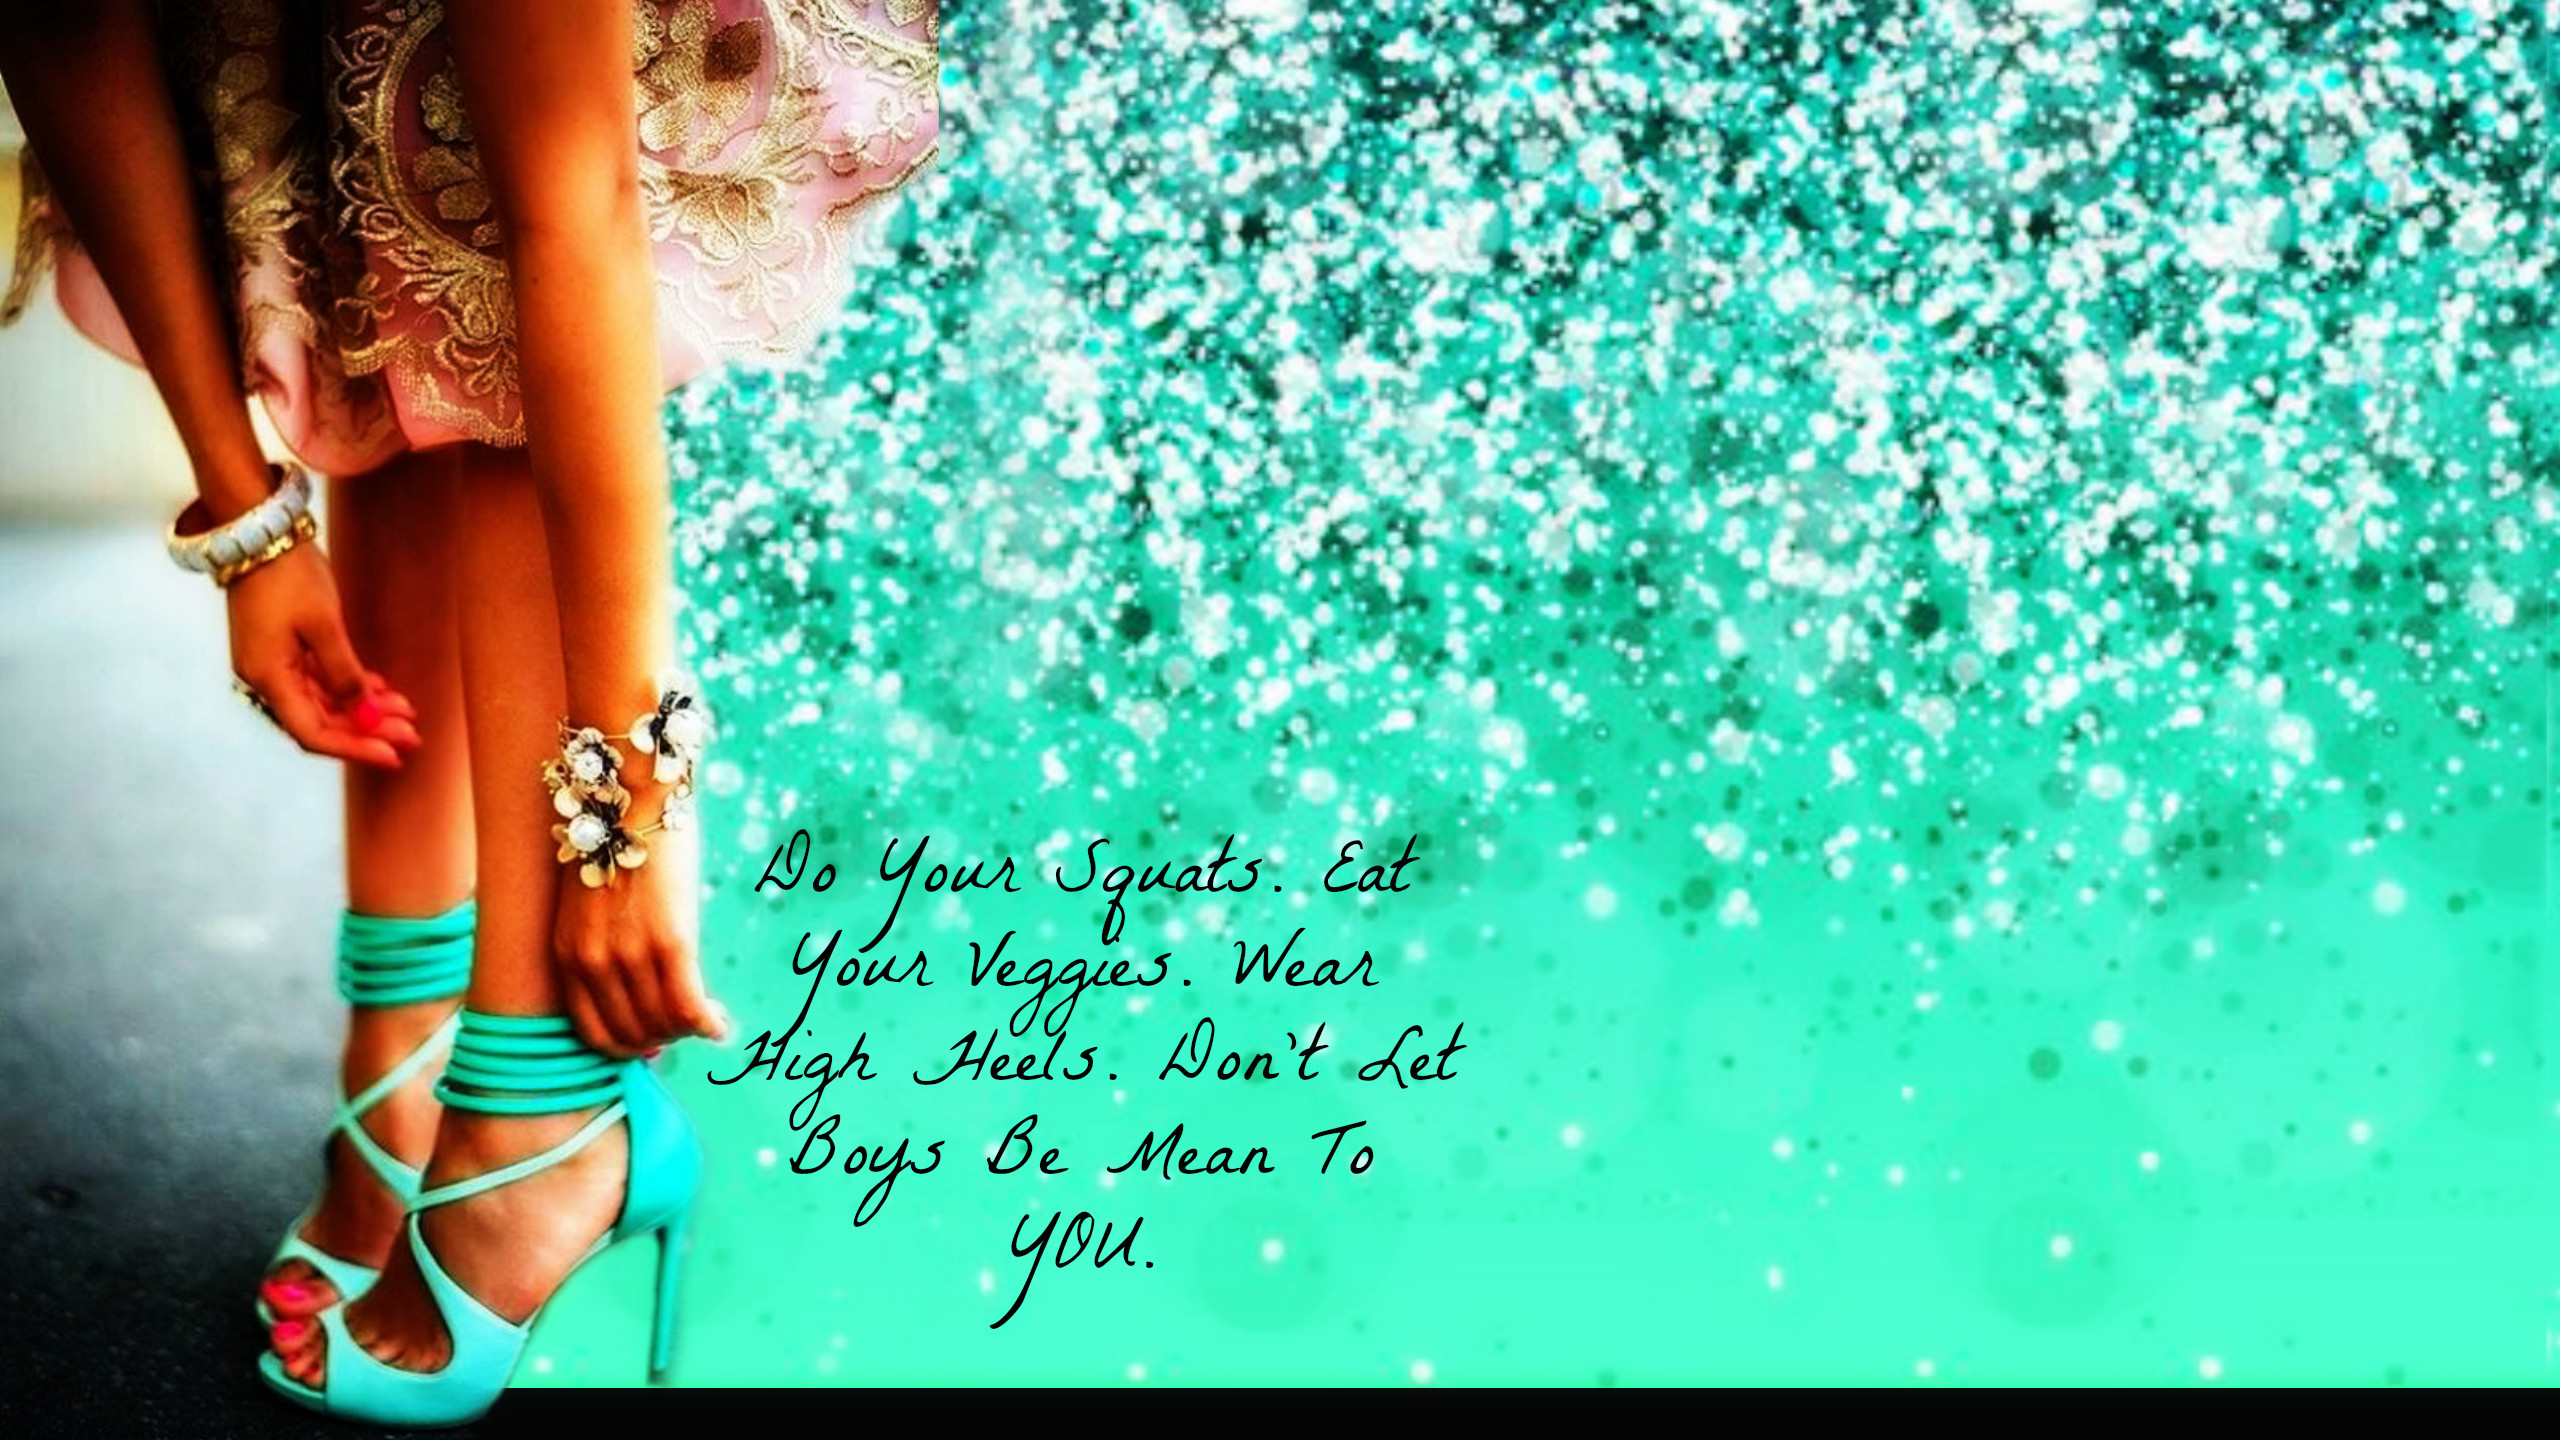 Free Computer Wallpaper Mermaids & Cute Shoes | Momma T Fitness